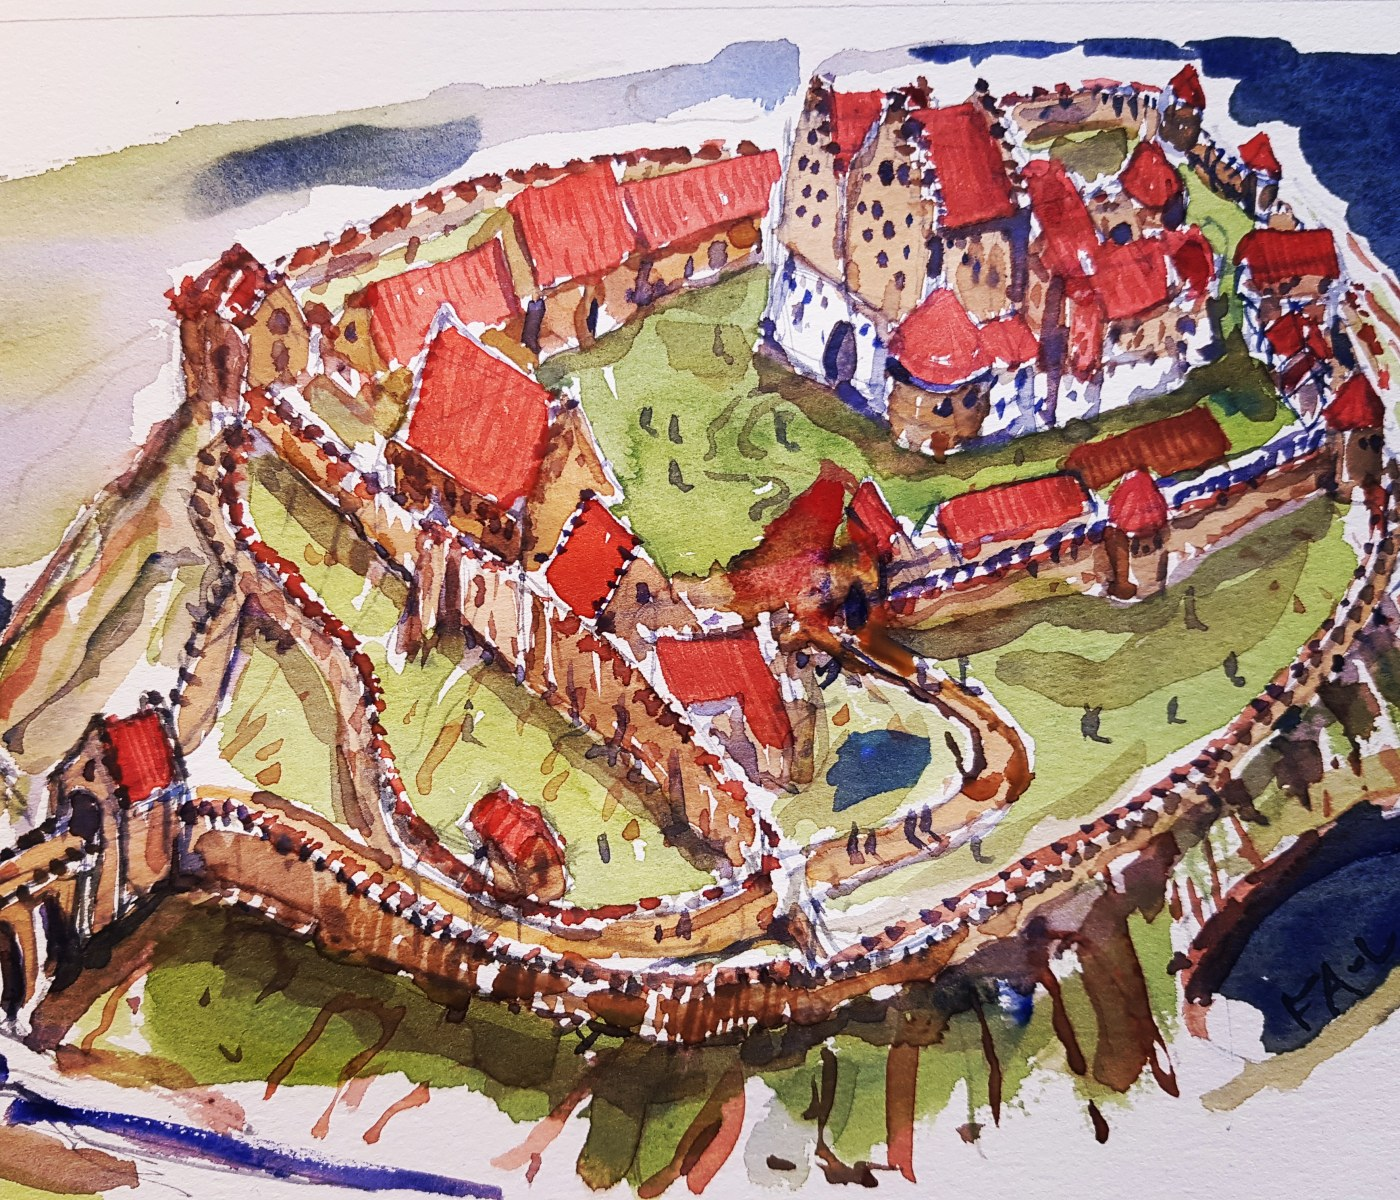 Watercolor reconstruction of the Hammershus castle ruin complex. Art by Frits Ahlefeldt